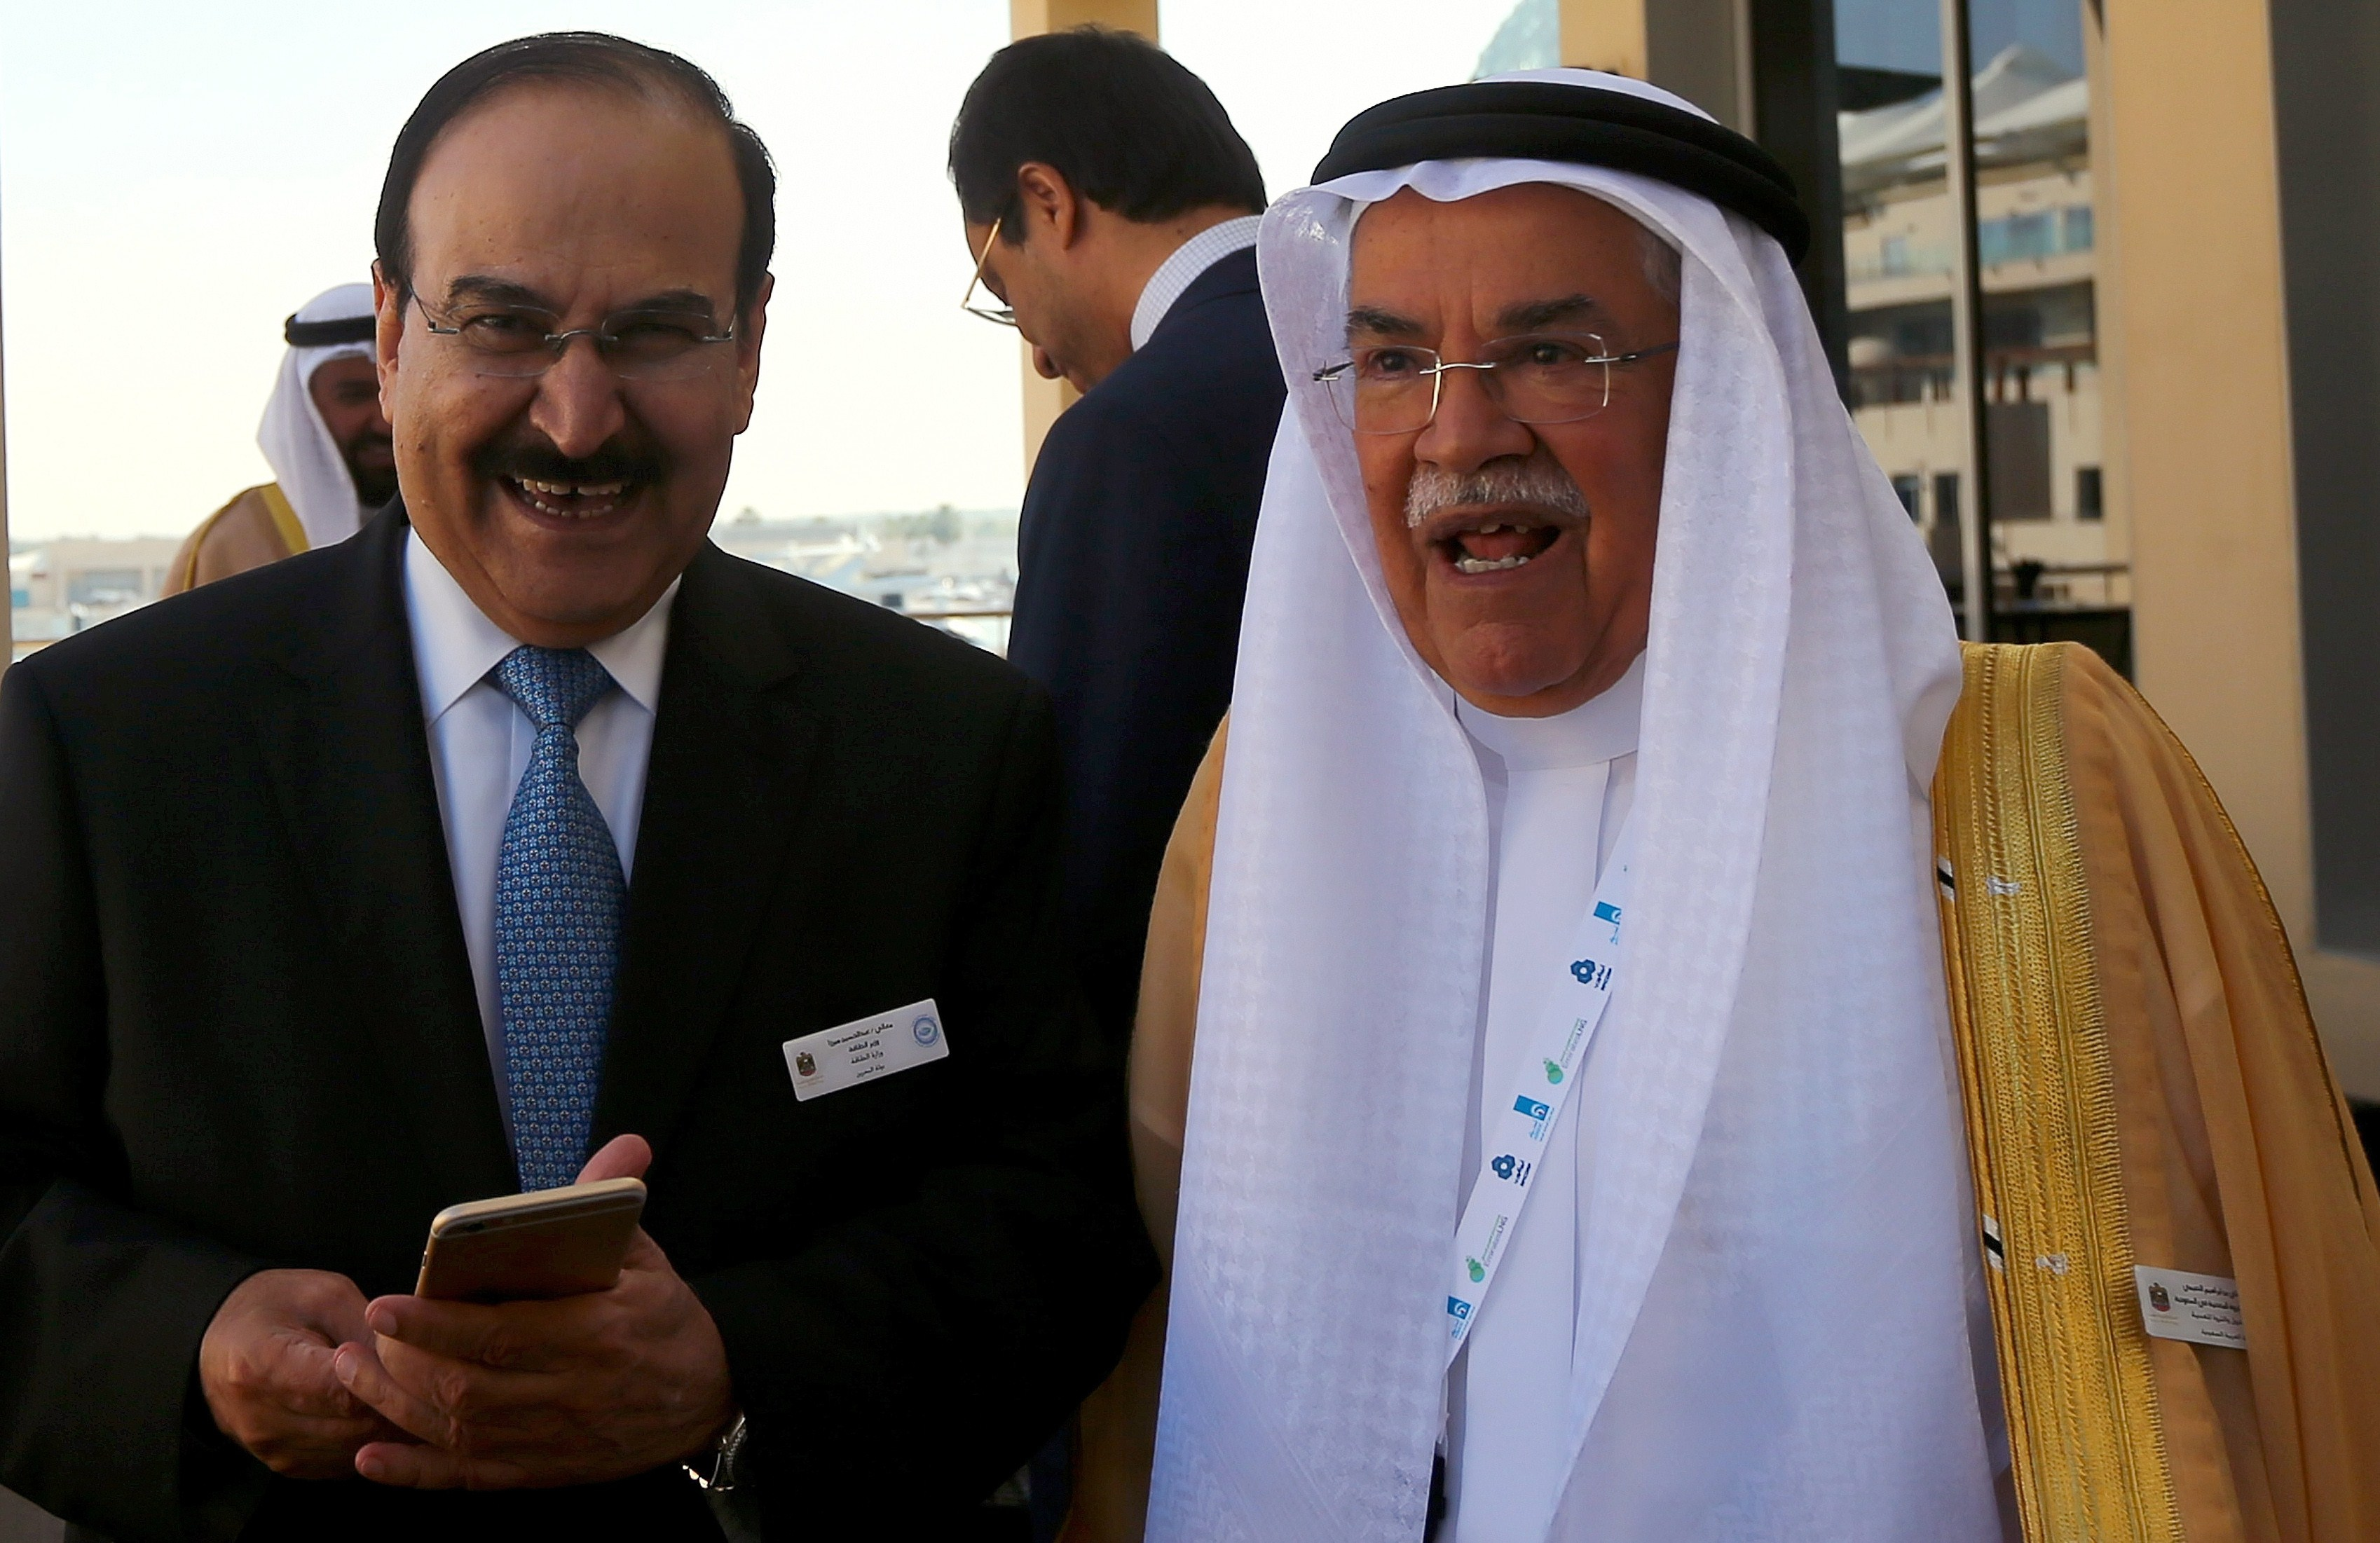 From left: Bahraini Oil Minister Abdulhussain bin Ali Mirza stands with Saudi Oil Minister Ali al-Naimi during the 10th Arab Energy Conference in Abu Dhabi, on Dec. 21, 2014.